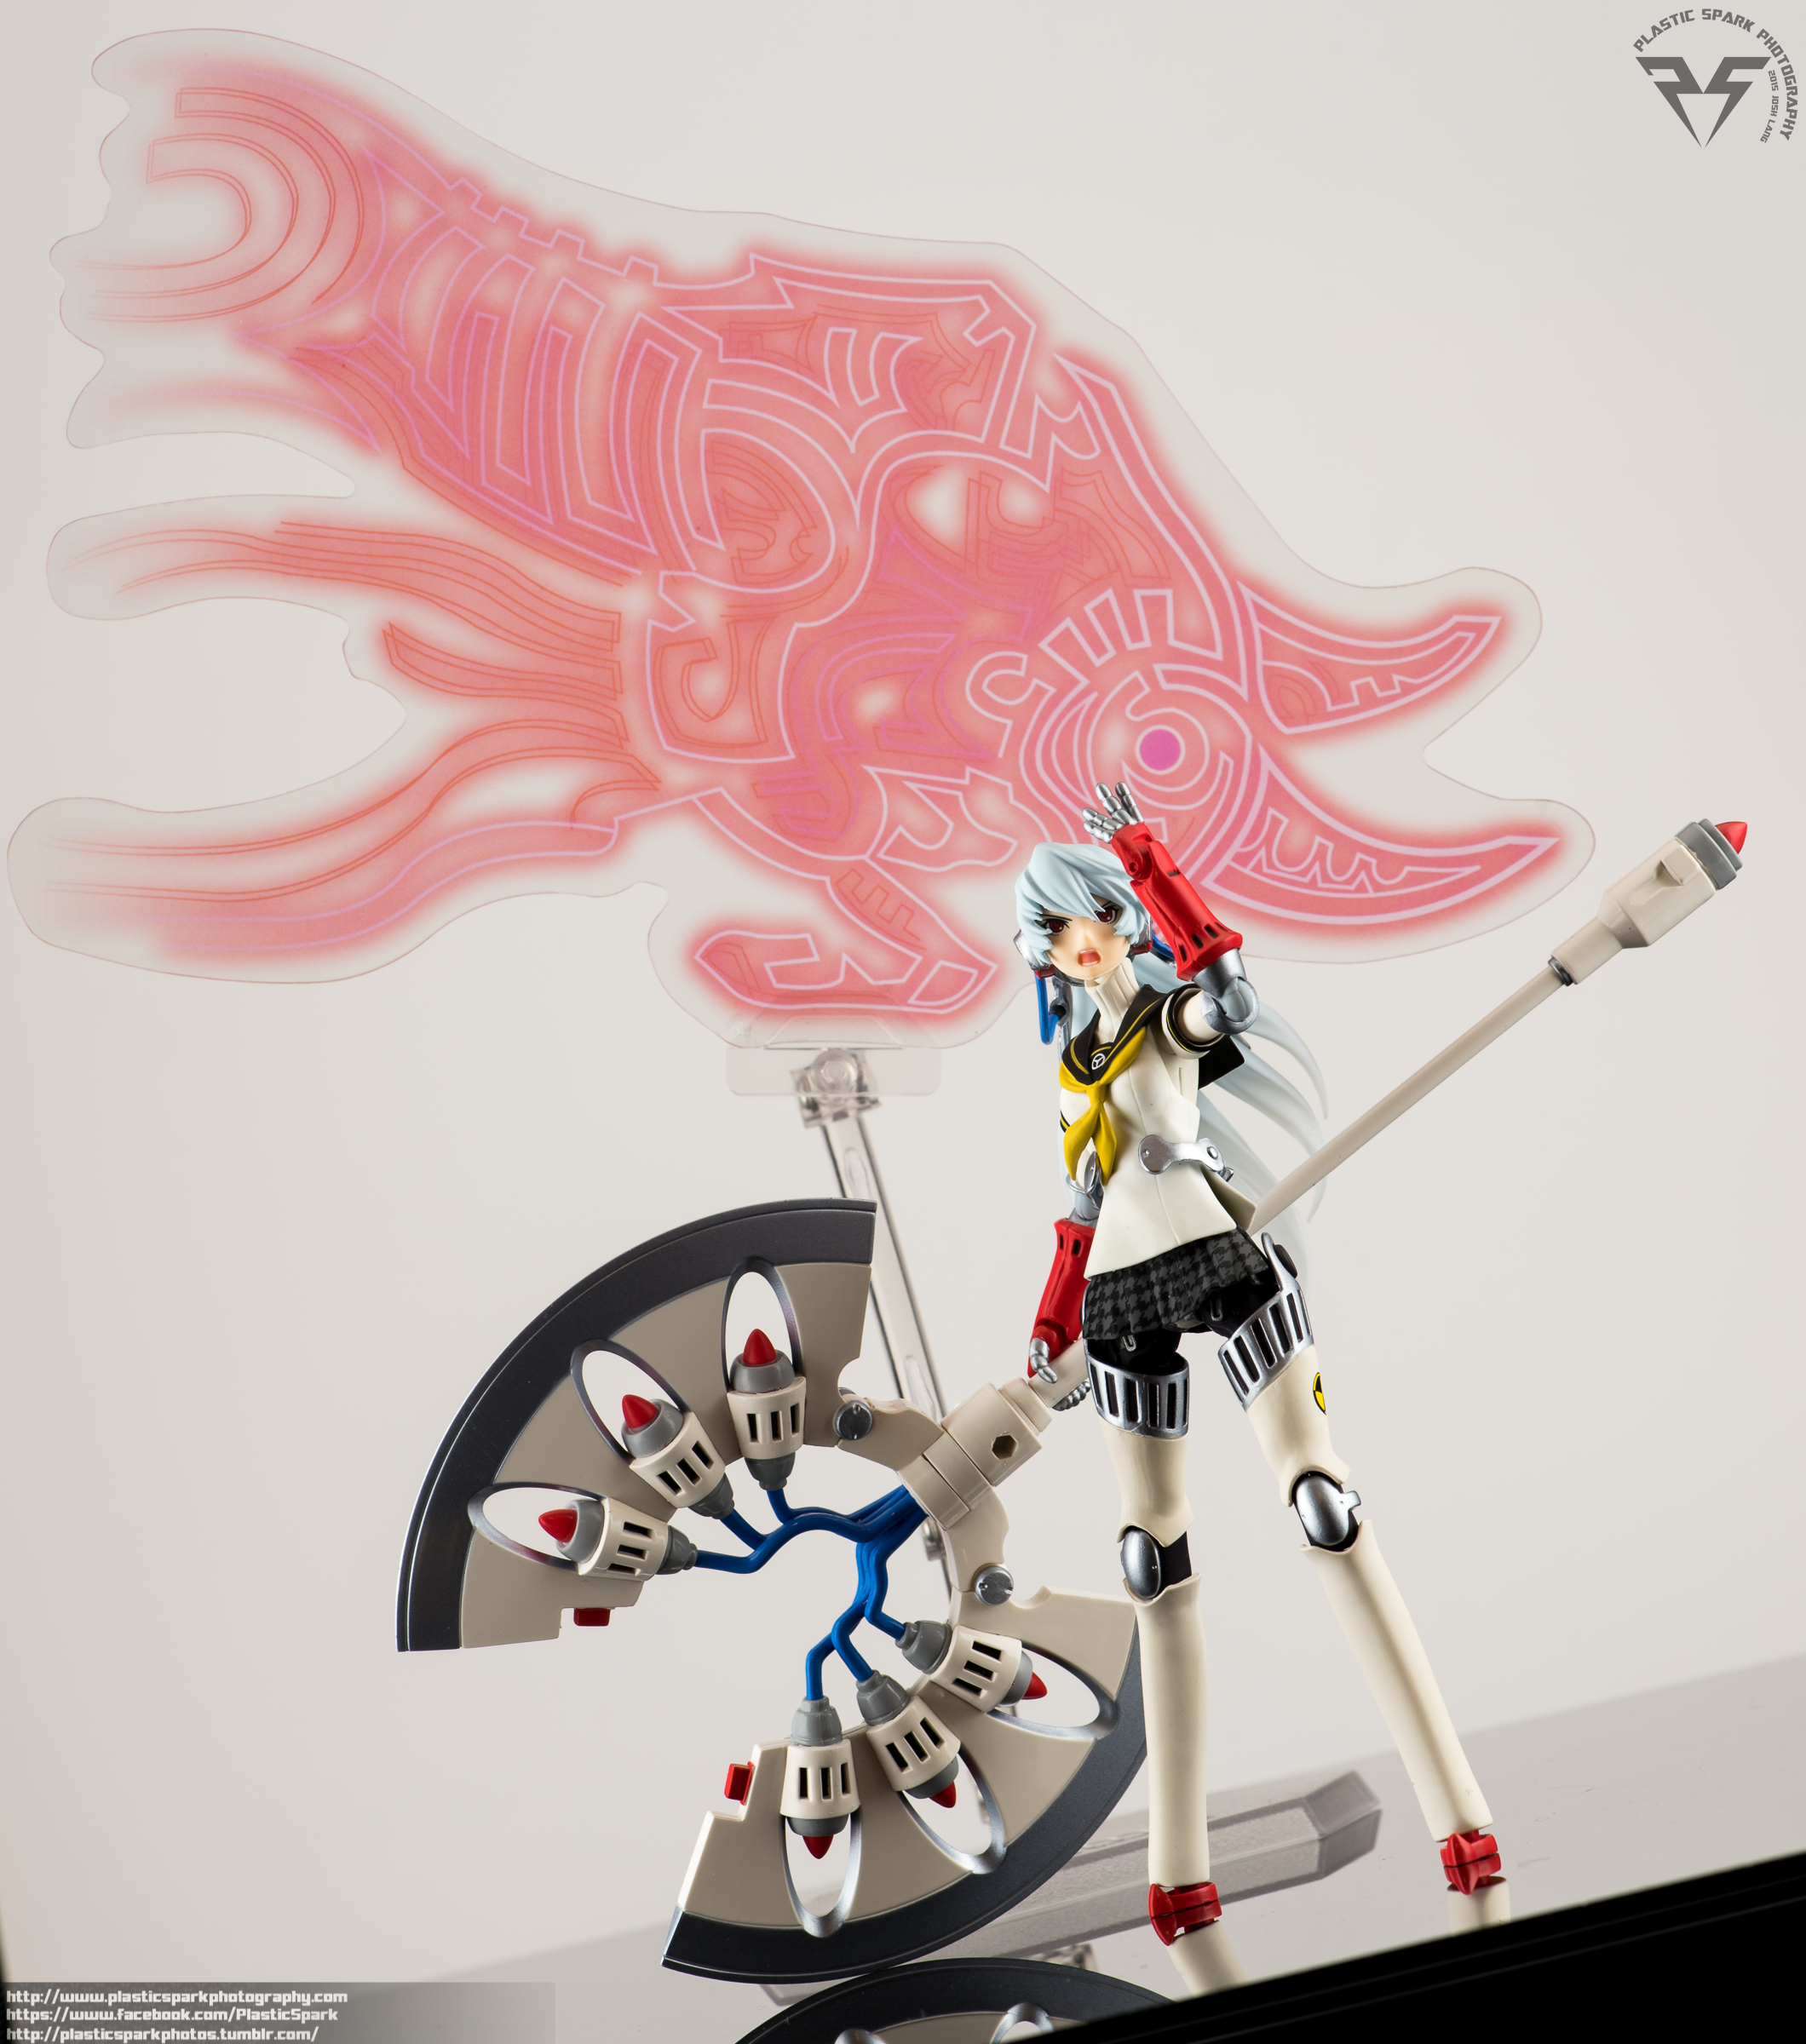 Figma-Labrys-(28-of-33).png